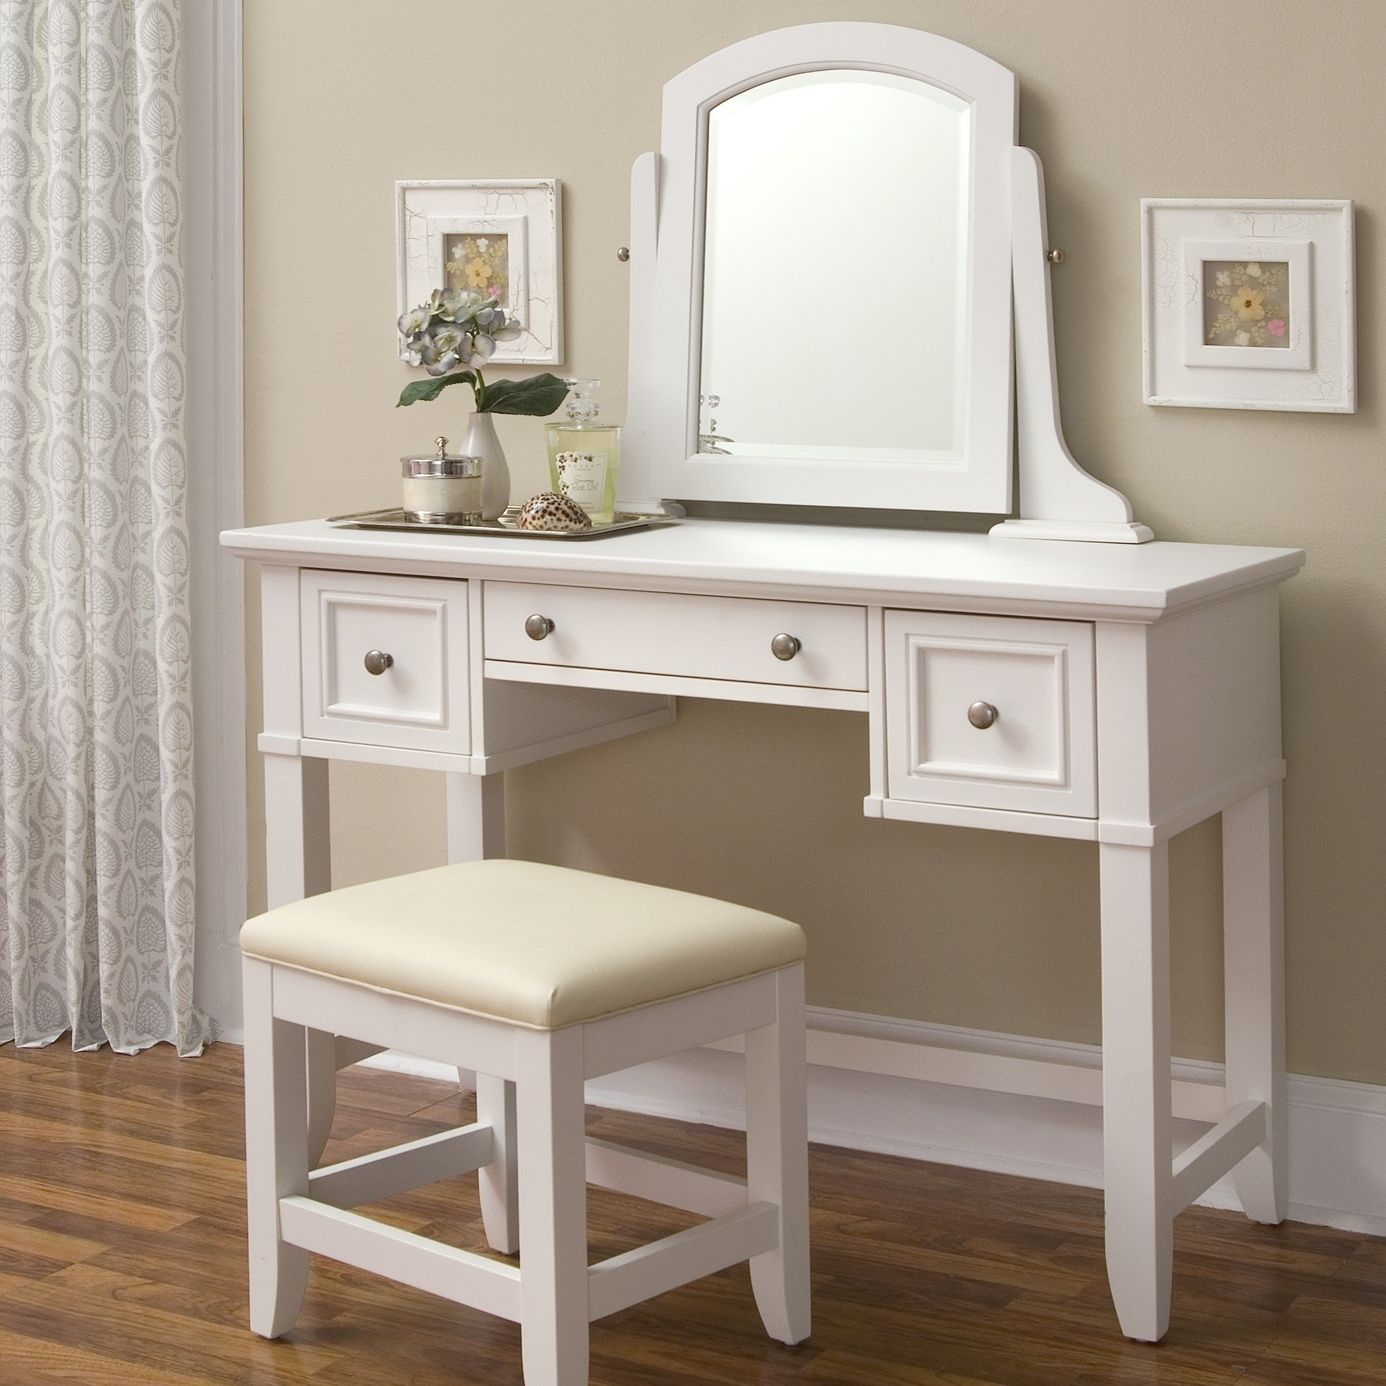 light vanity chair with makeup of nytexas square bench white mirror inspiration diy table and